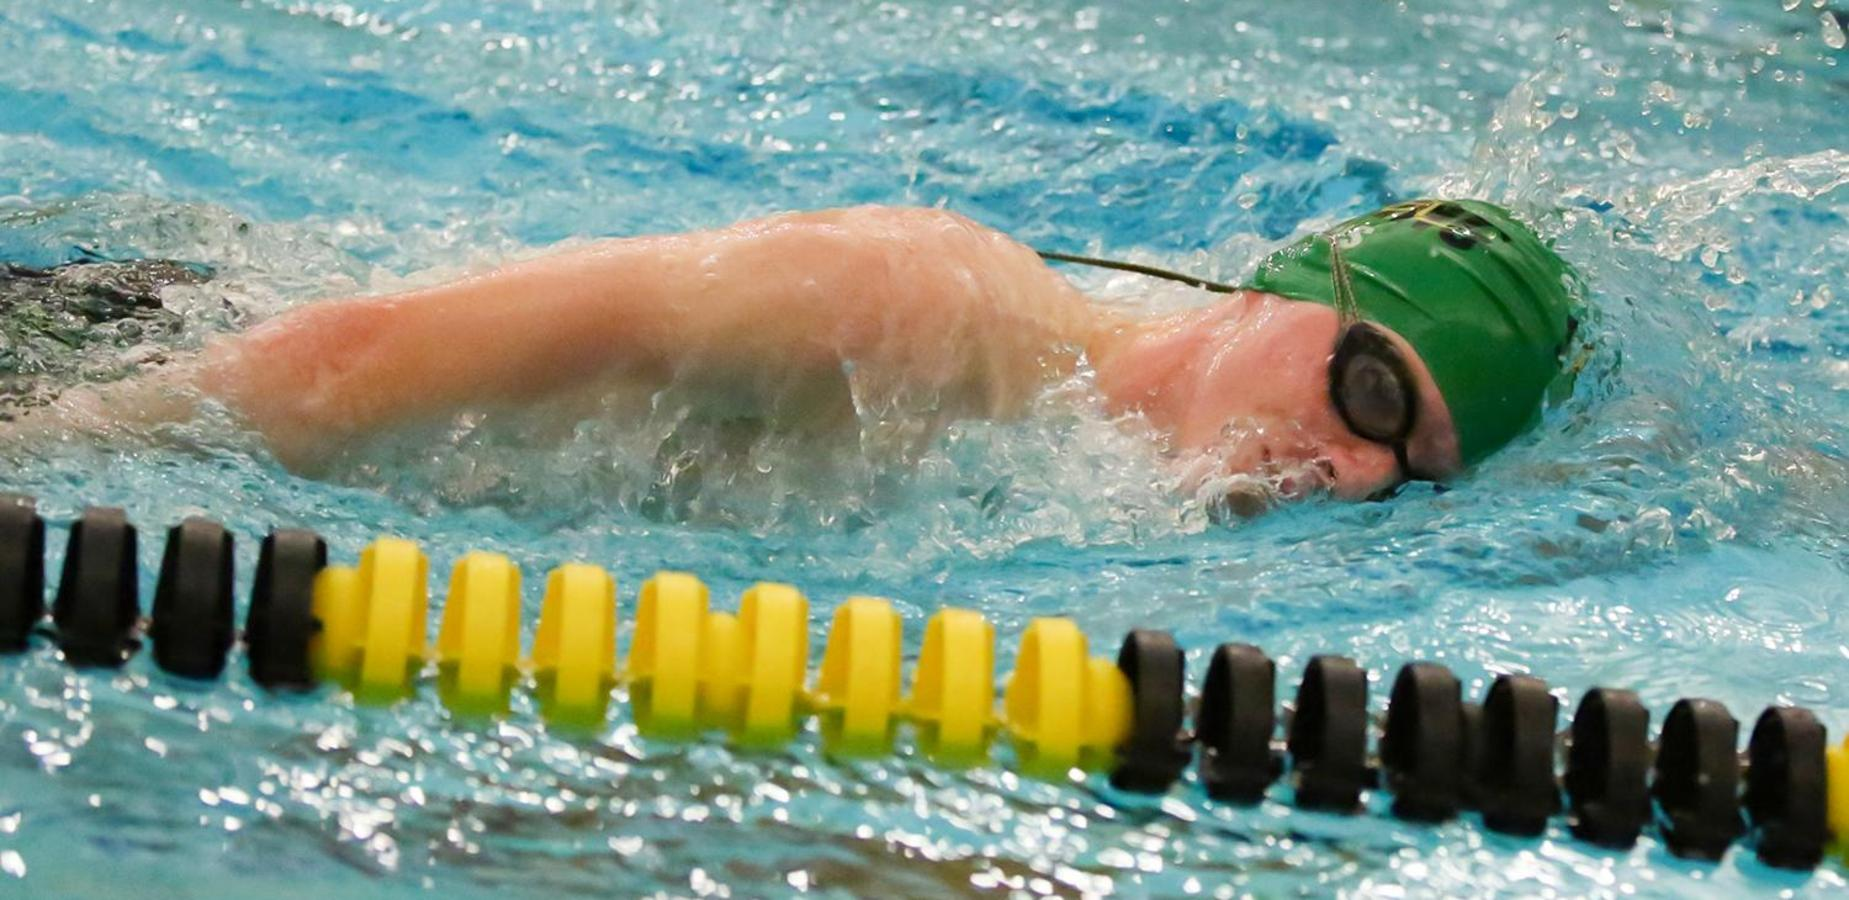 Student swims in competition